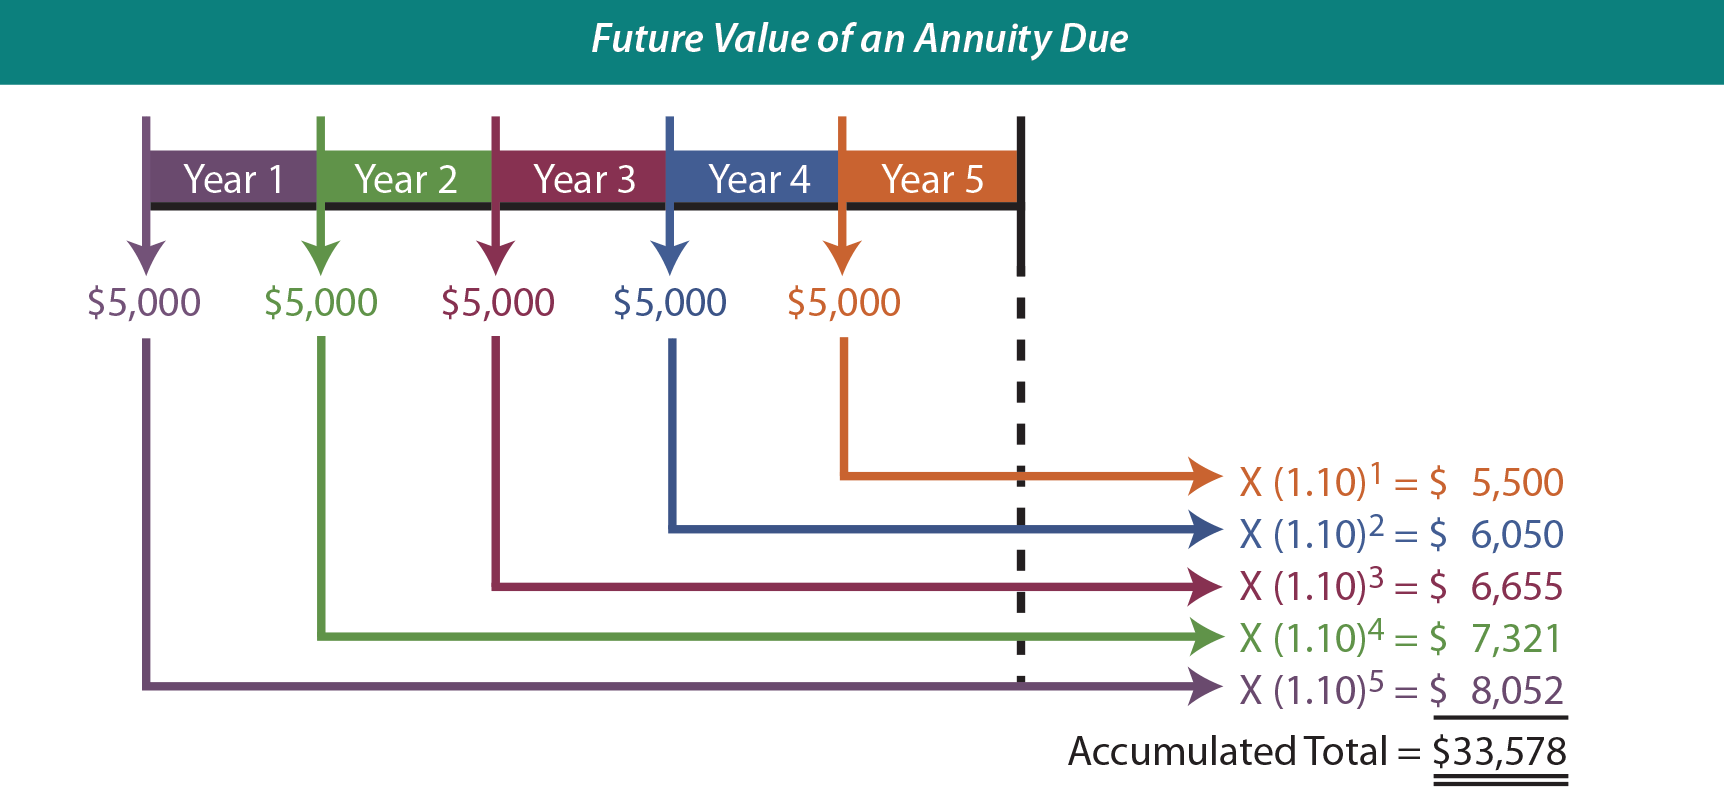 Future Value of an Annuity Due Illustration